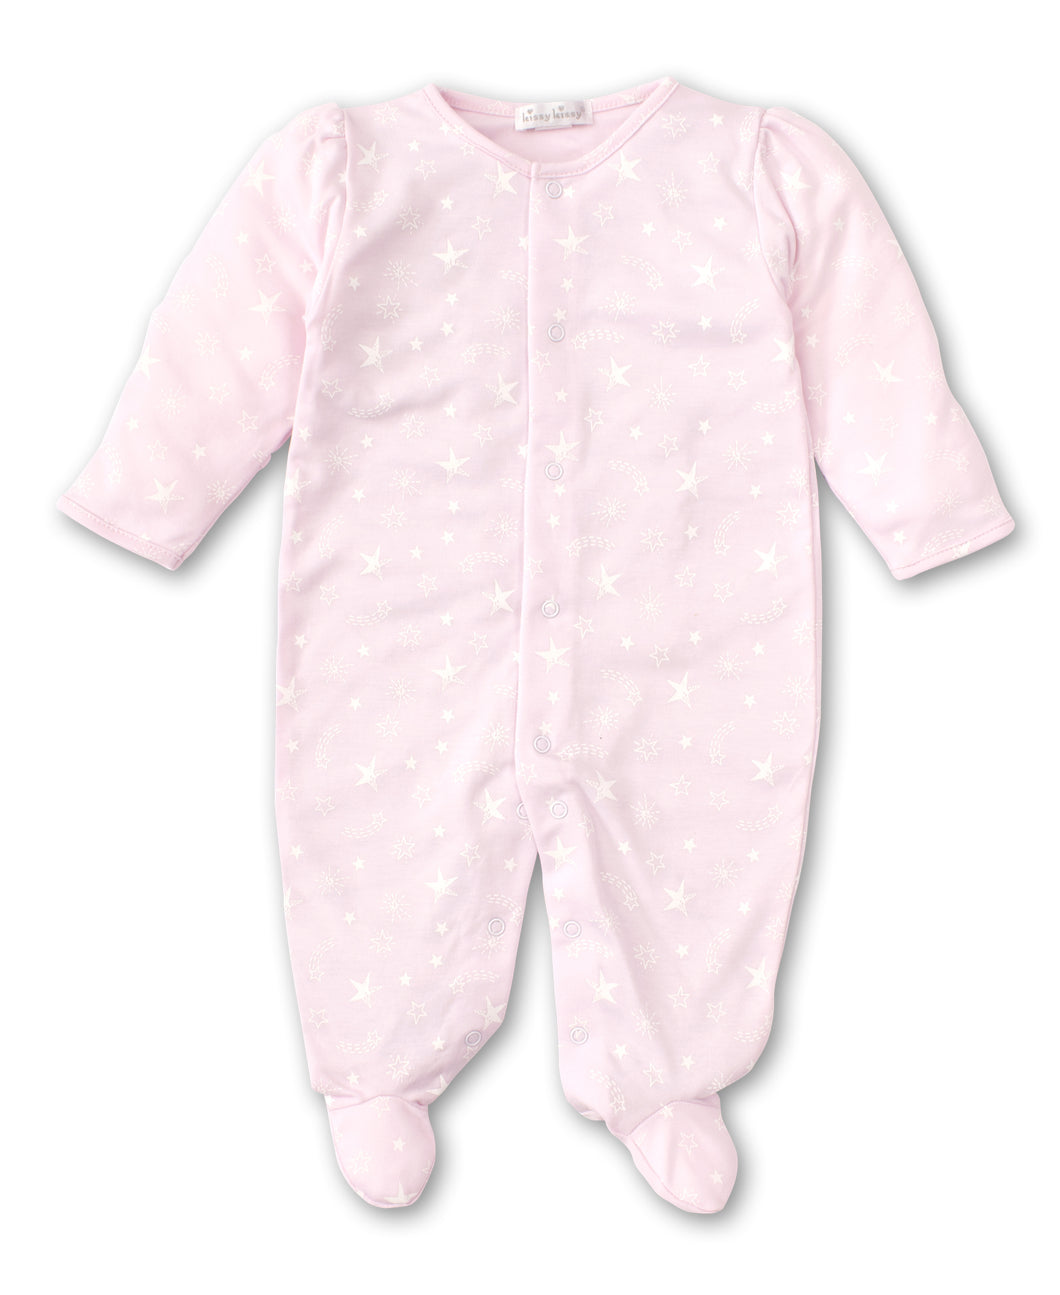 Starry Sky footie-infant